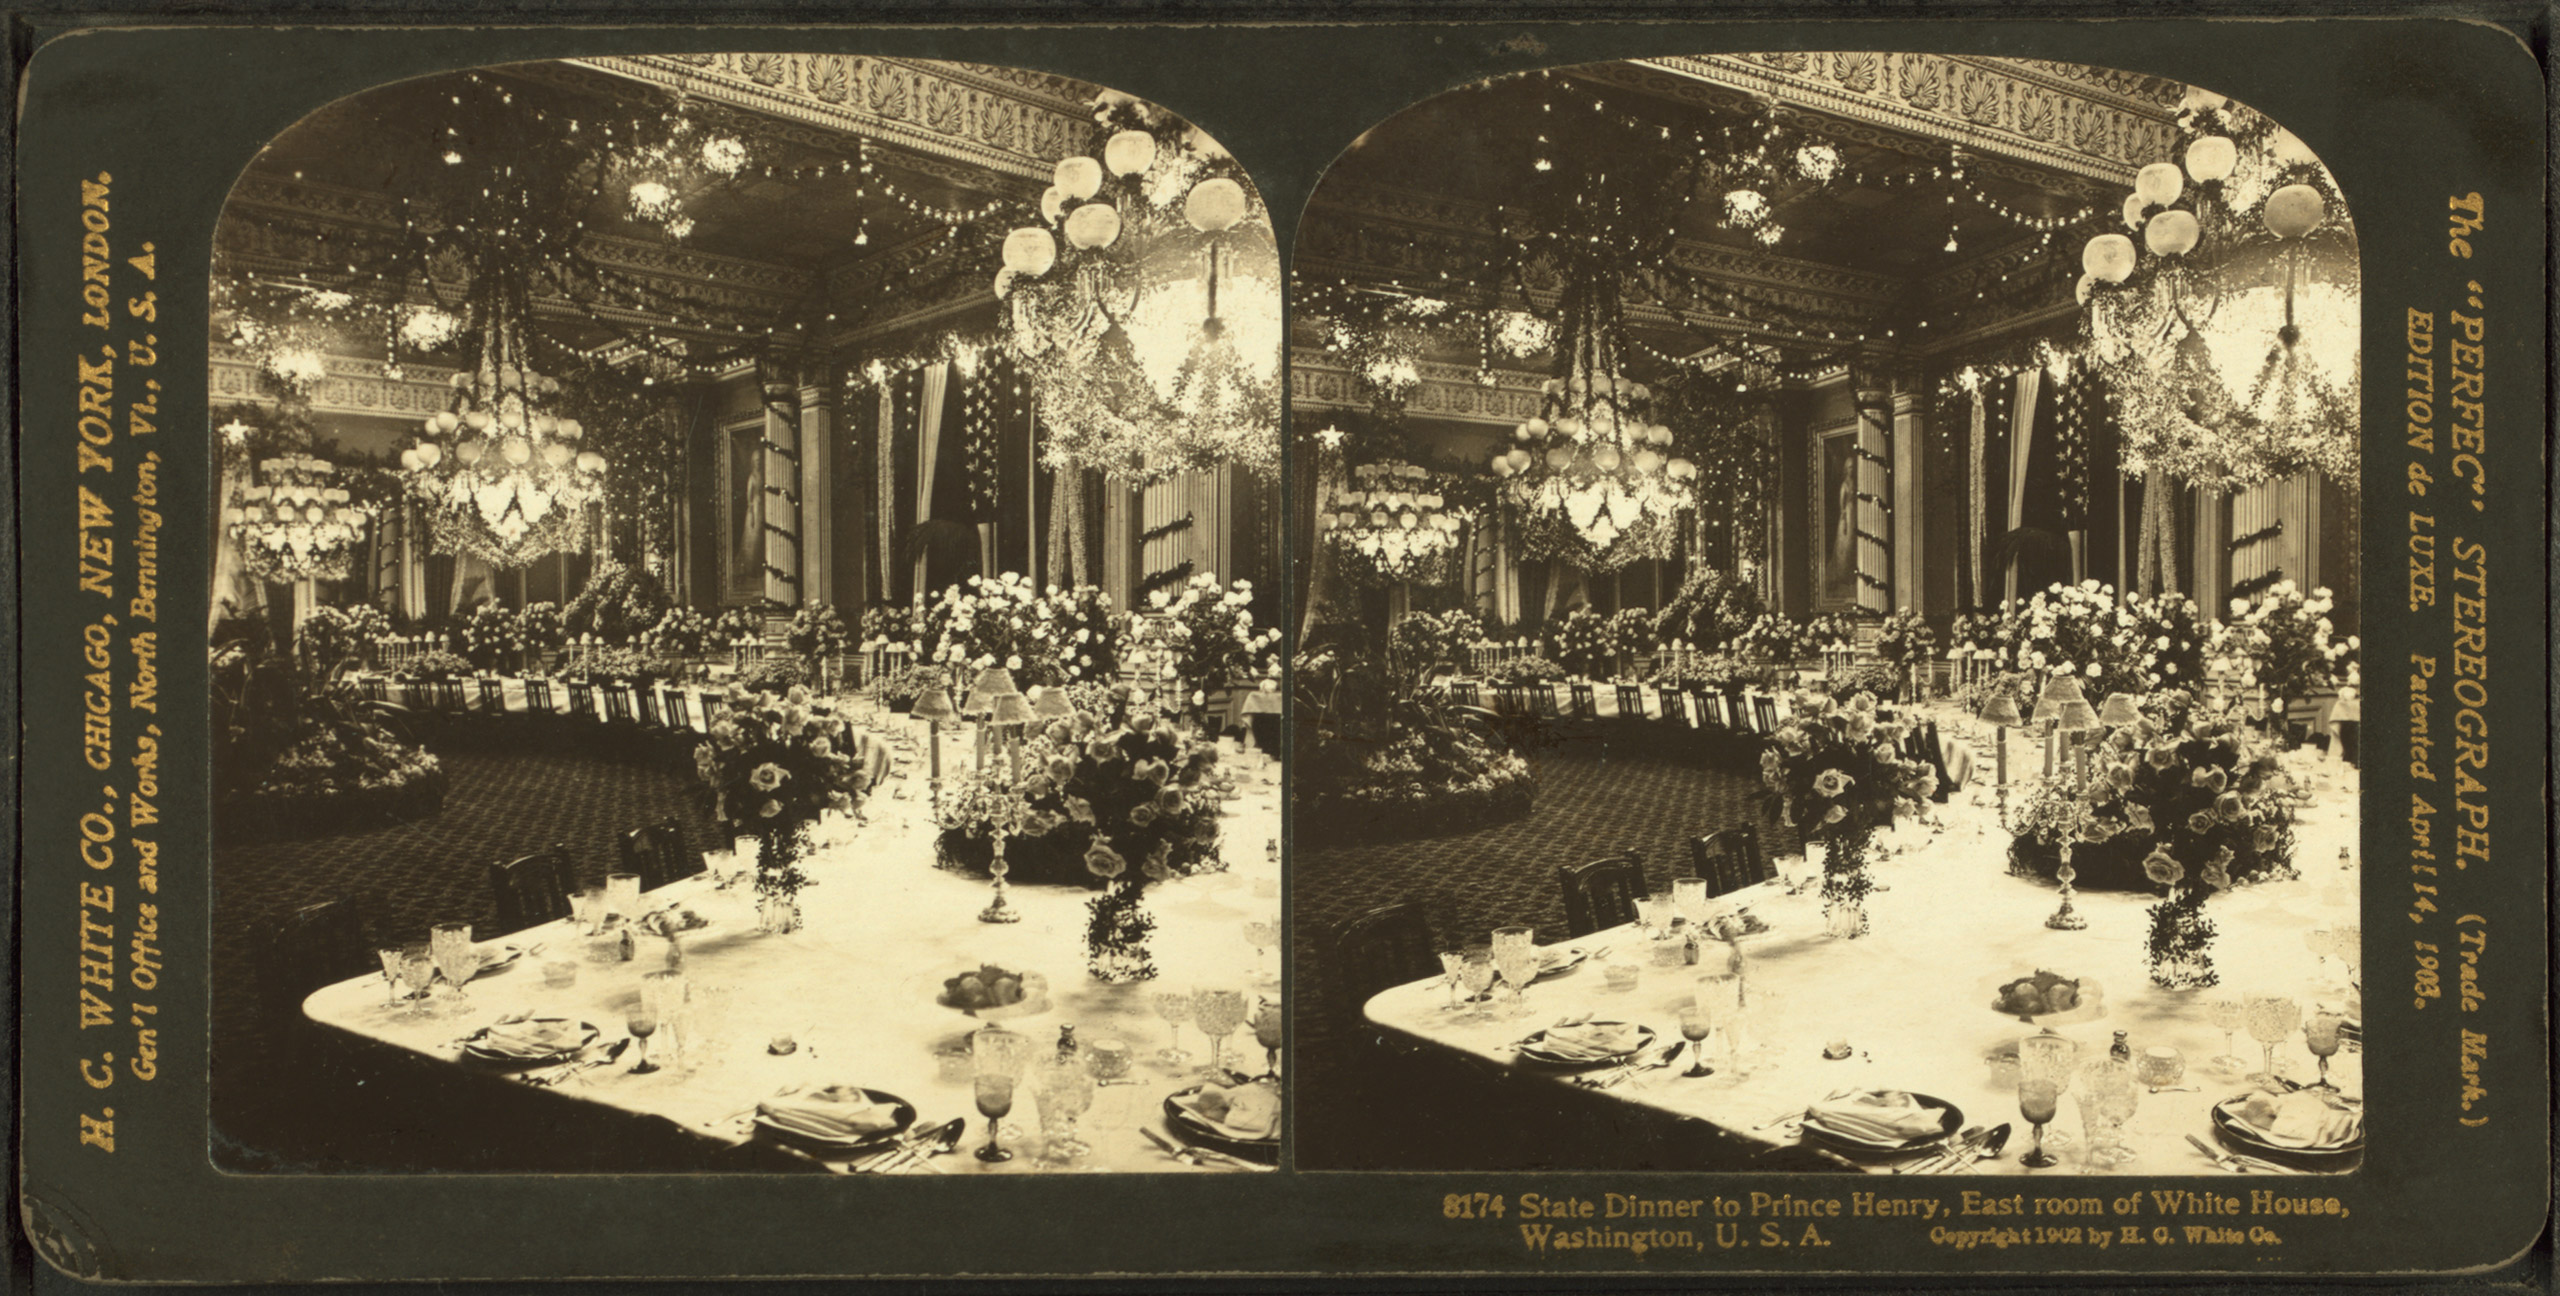 State dinner to Prince Henry of Prussia. East Room of White House, Washington D.C., 1902. Theodore Roosevelt, President.